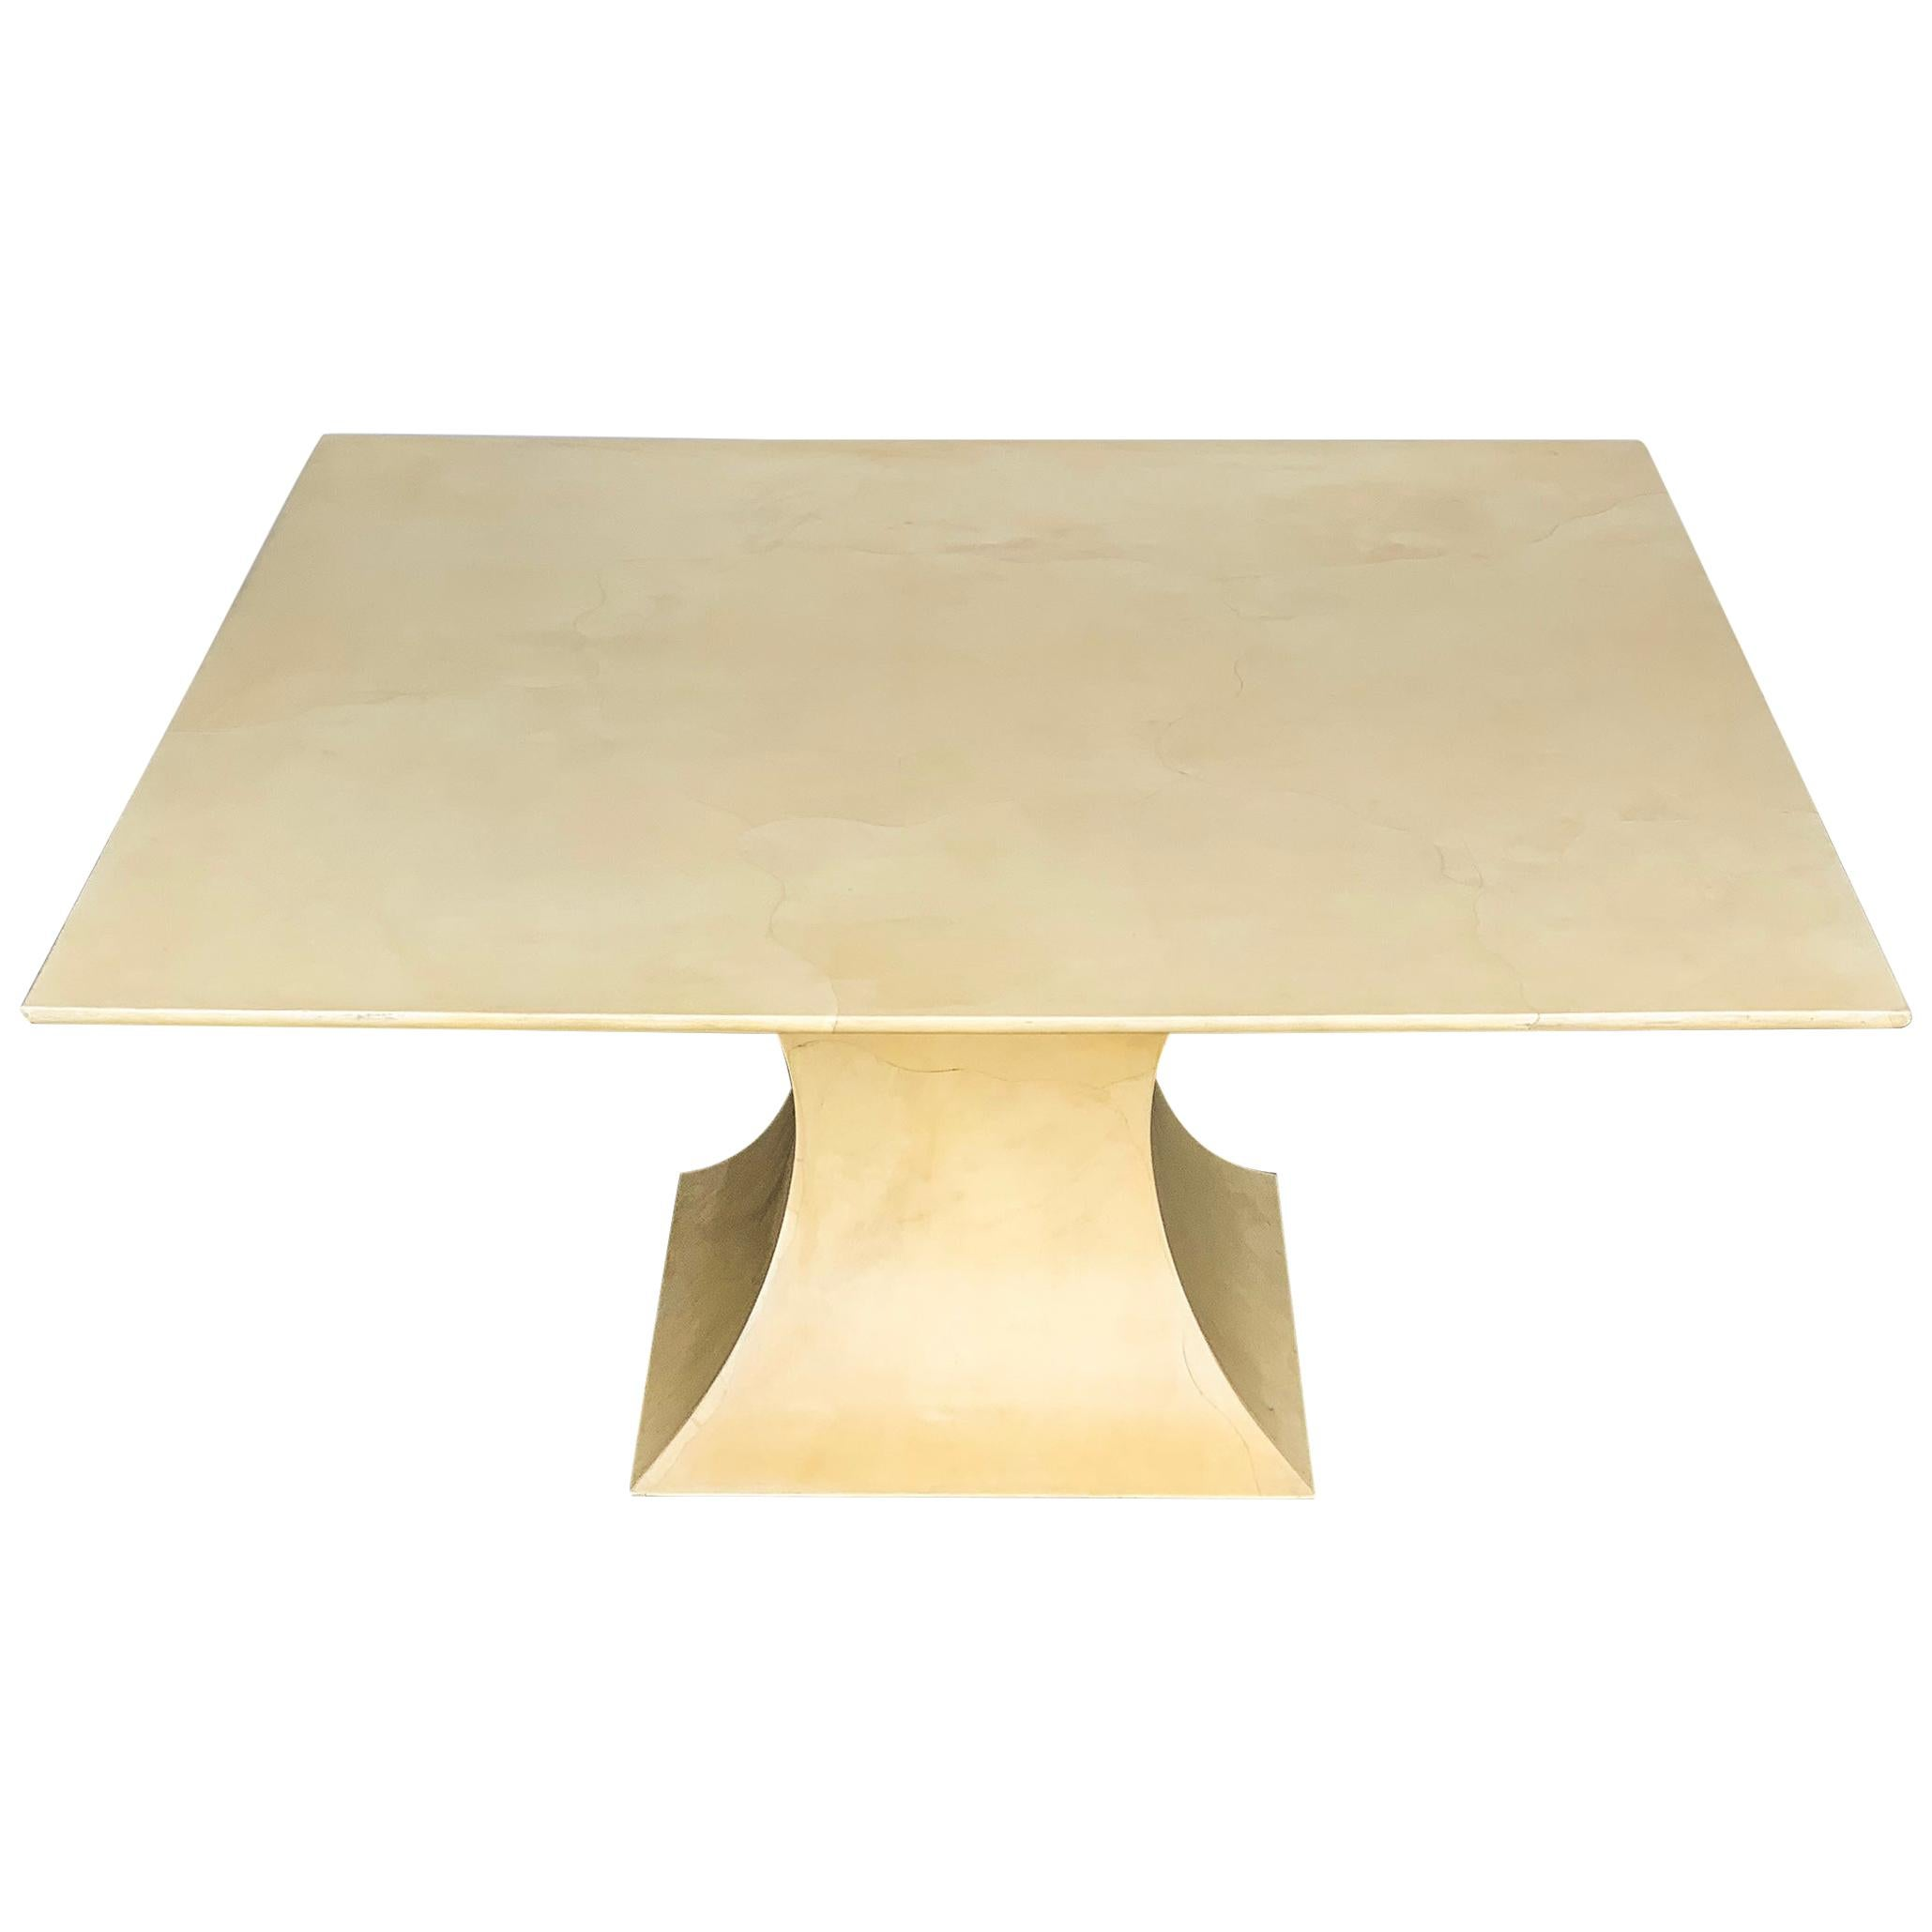 Karl Springer Lacquered Square Goatskin Parchment Dining Table